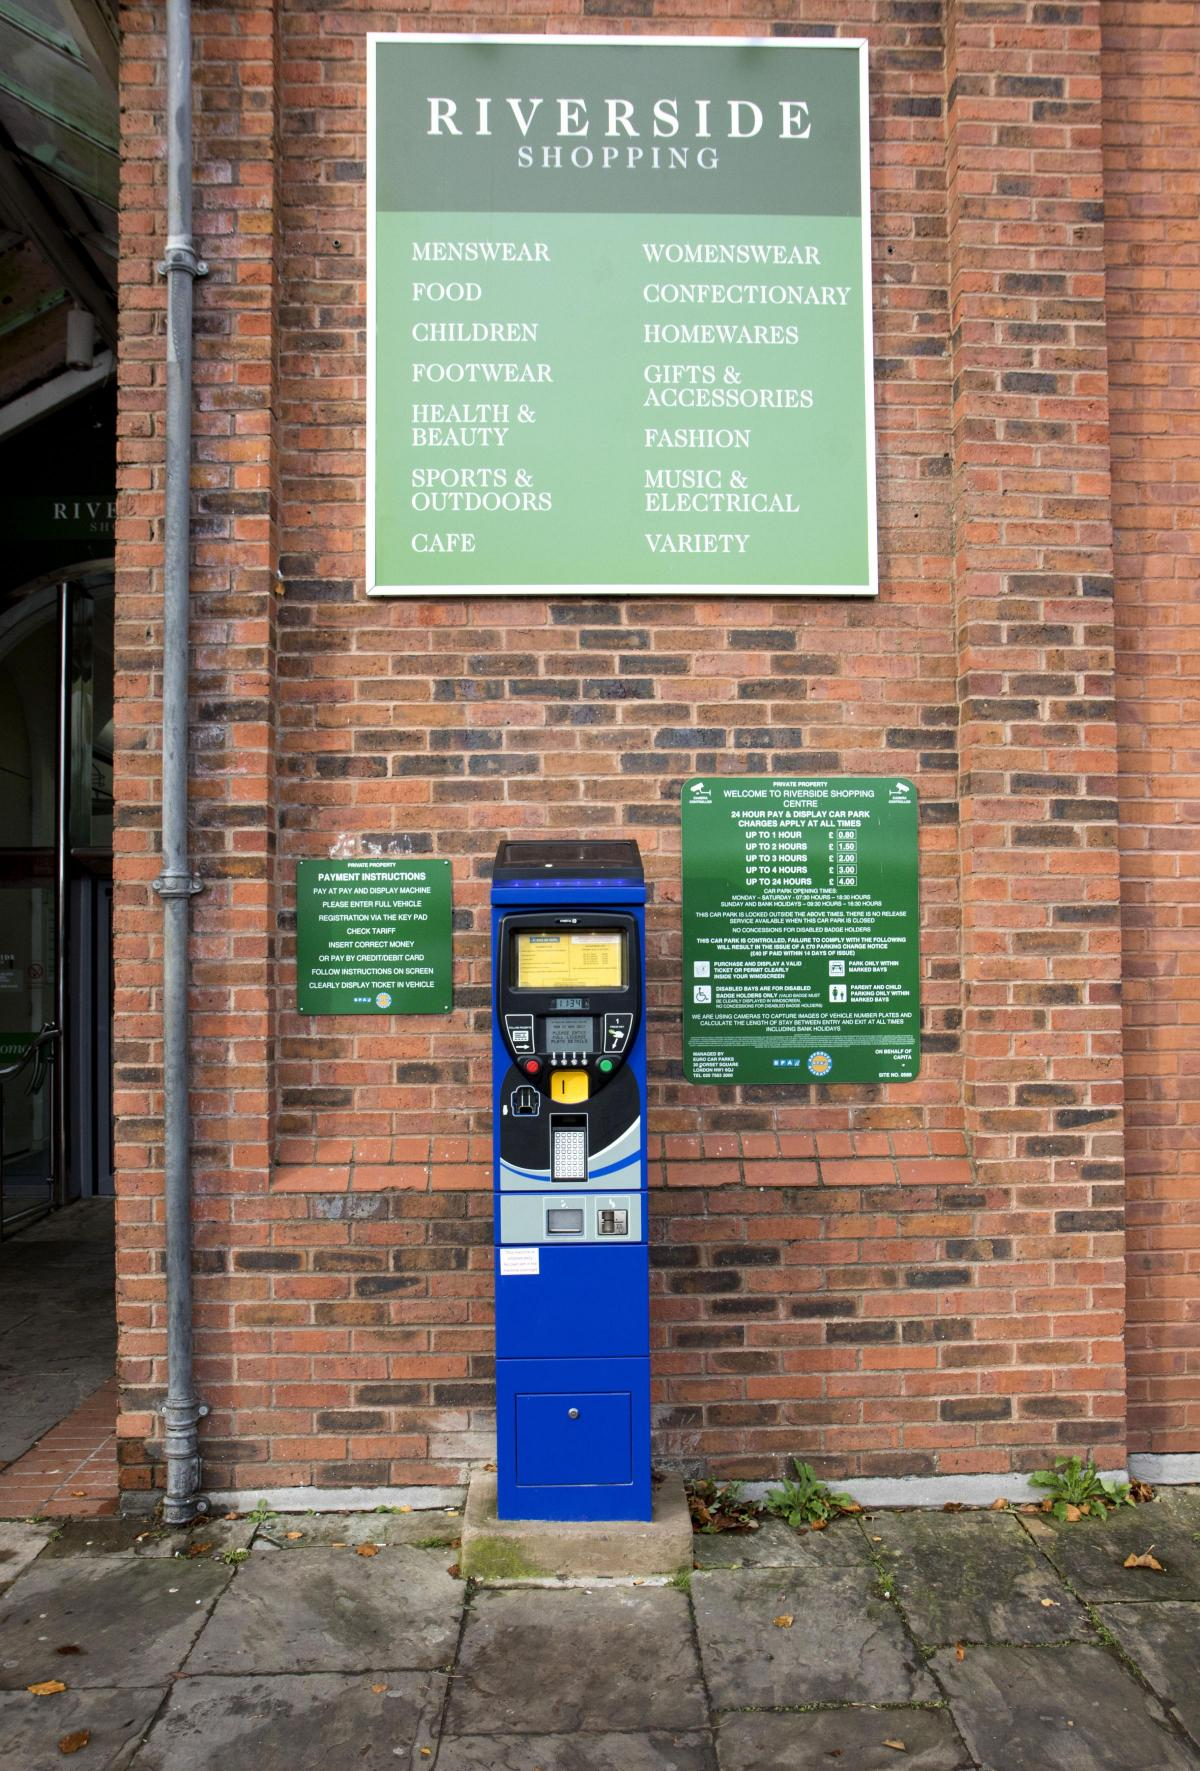 Euro Car Parks Criticised For Disabled Parking Charge At Riverside